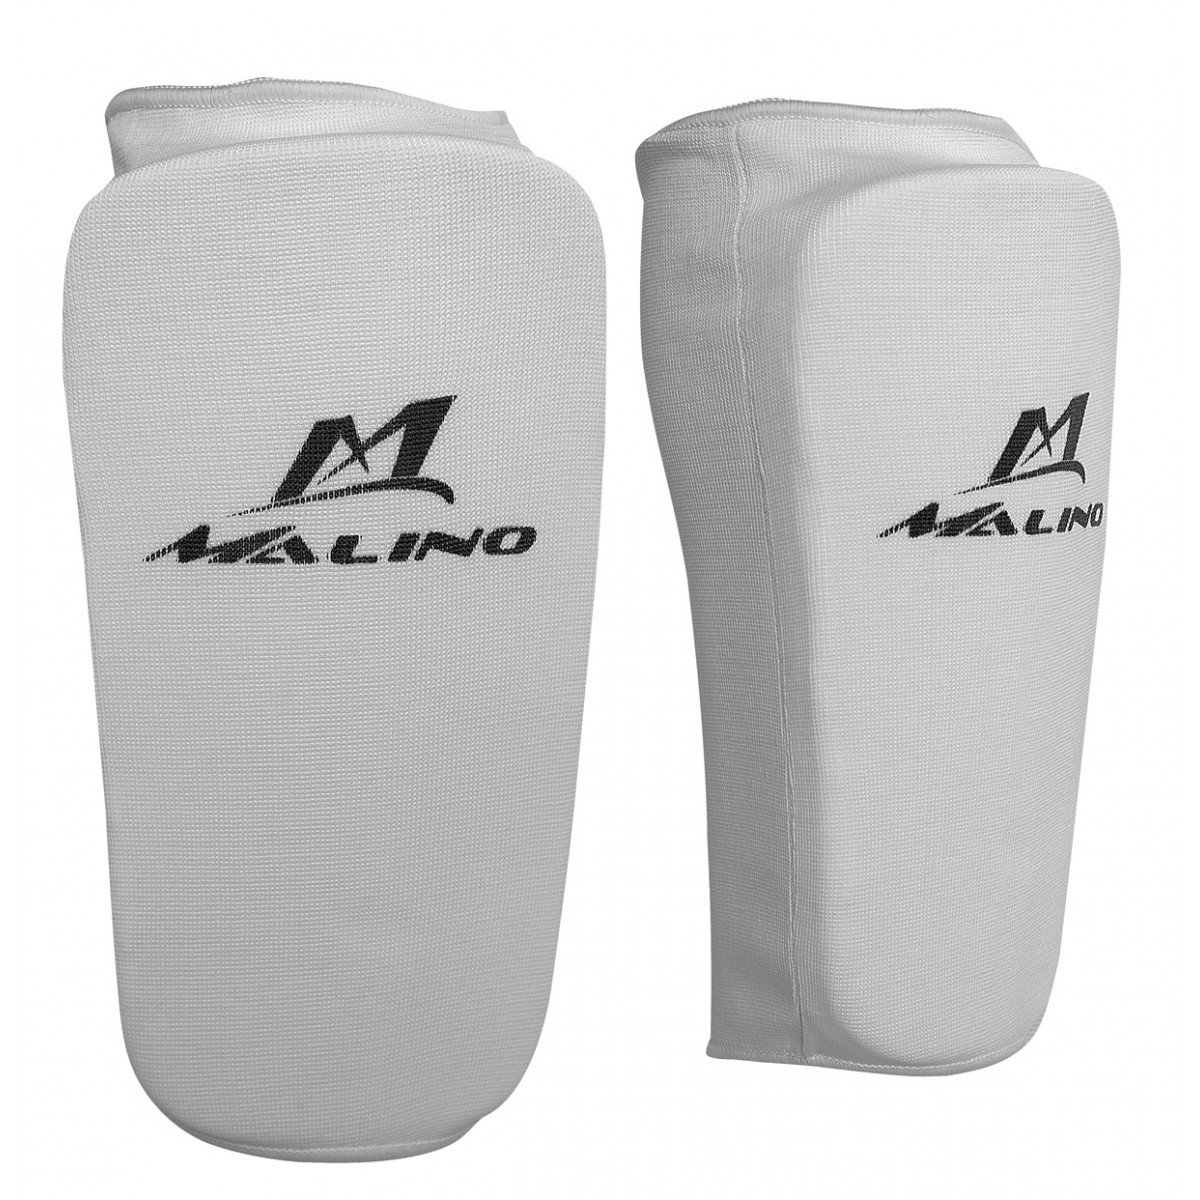 Forearm Guards White - Forearm Pads White